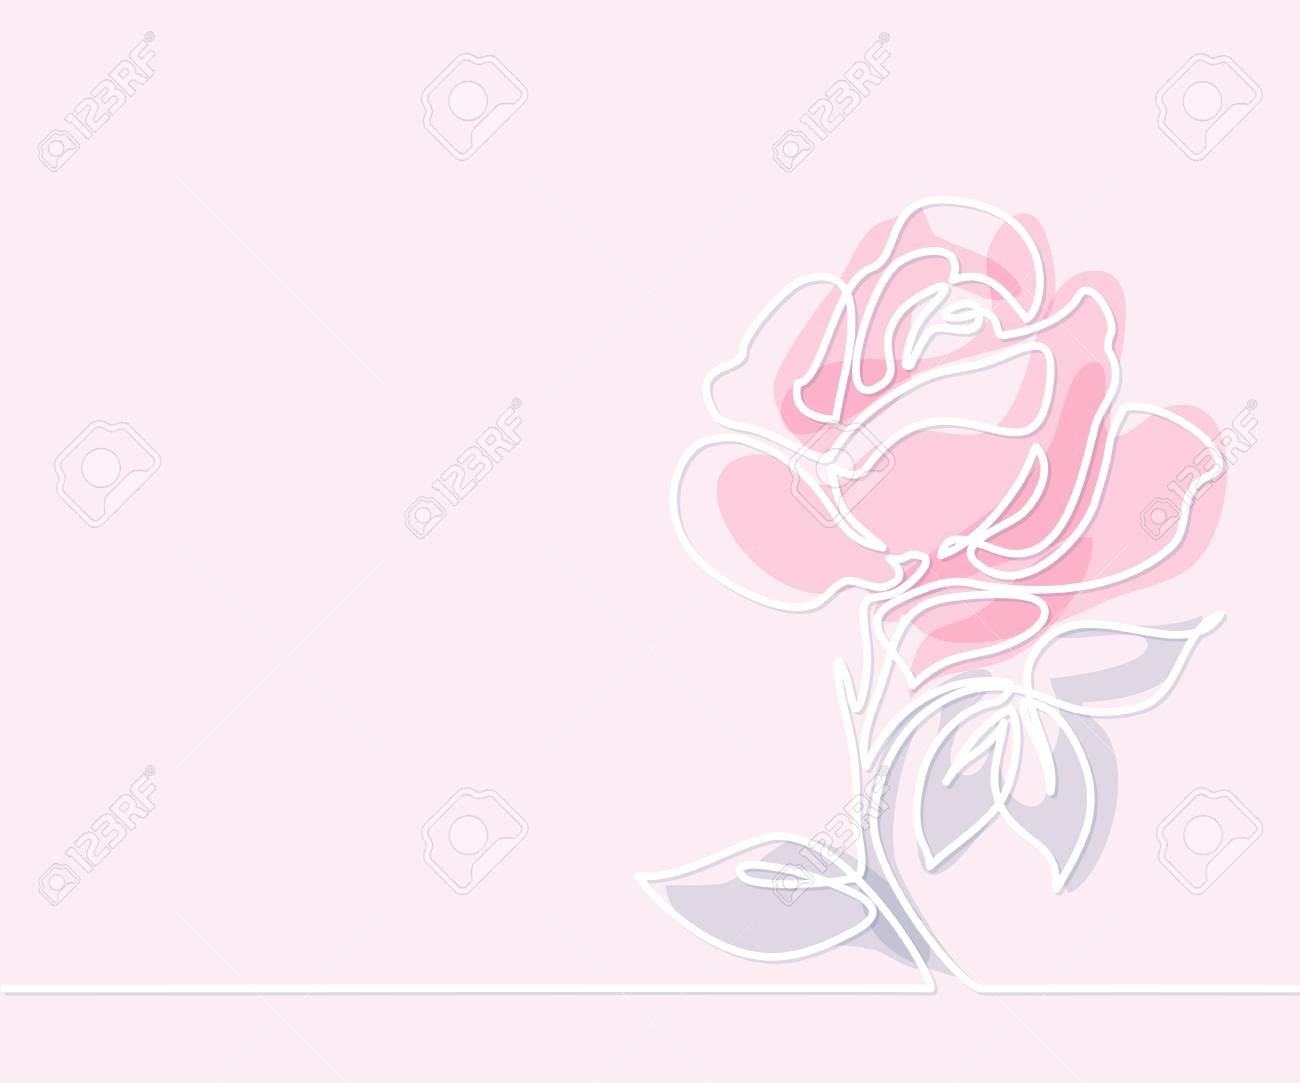 Line Drawing Of Flowers Clipart : Beautiful flowers. continuous line drawing. vector illustration